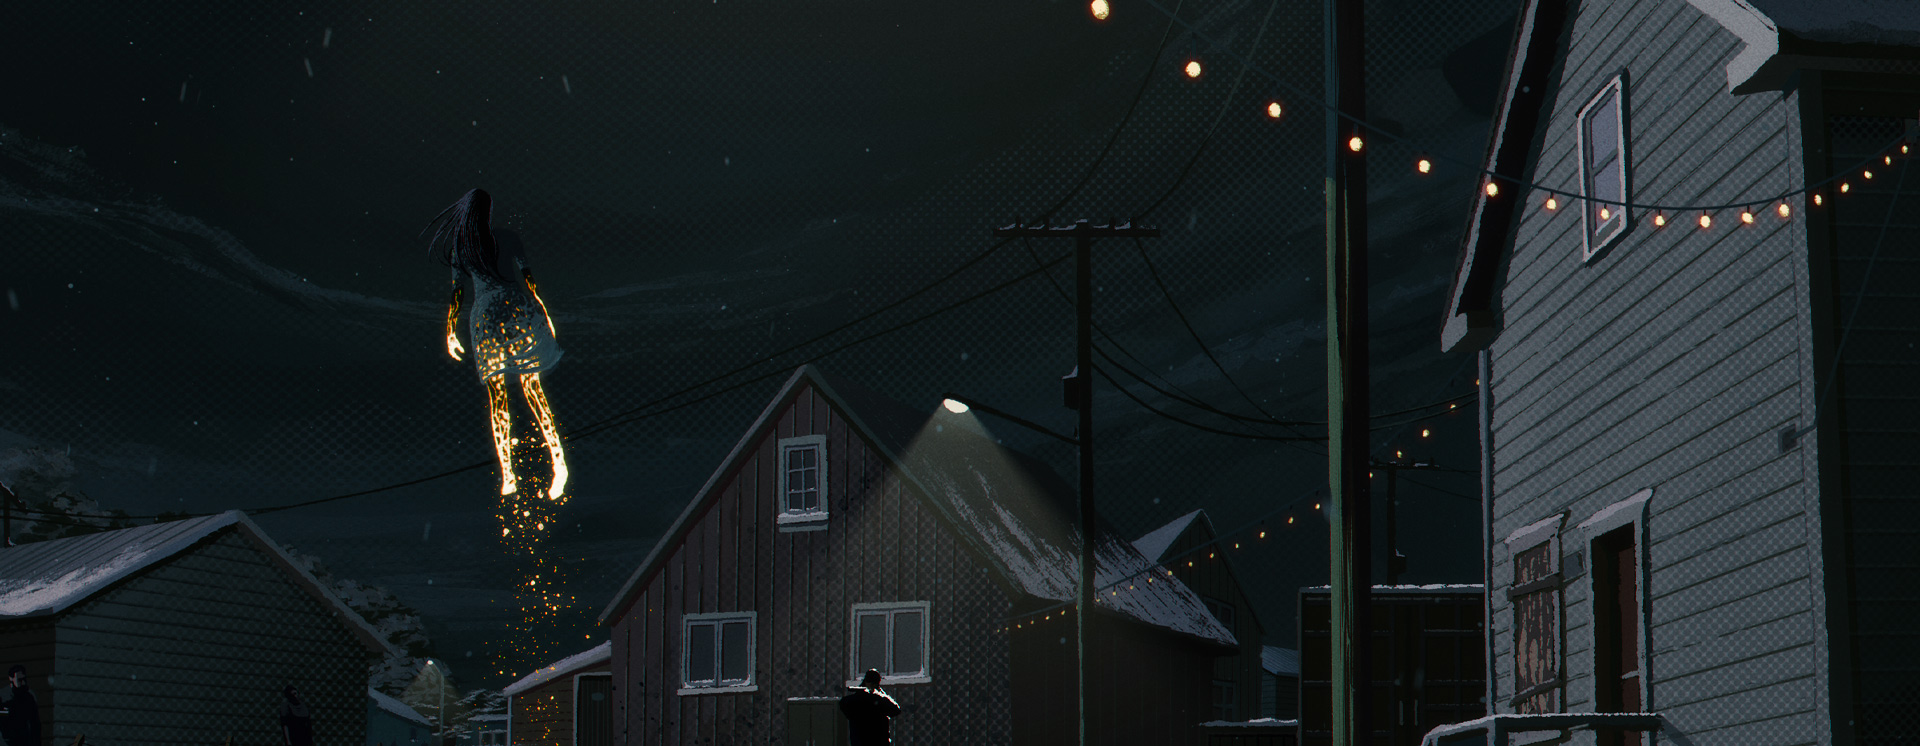 Northern_entity_1920px_detail_02